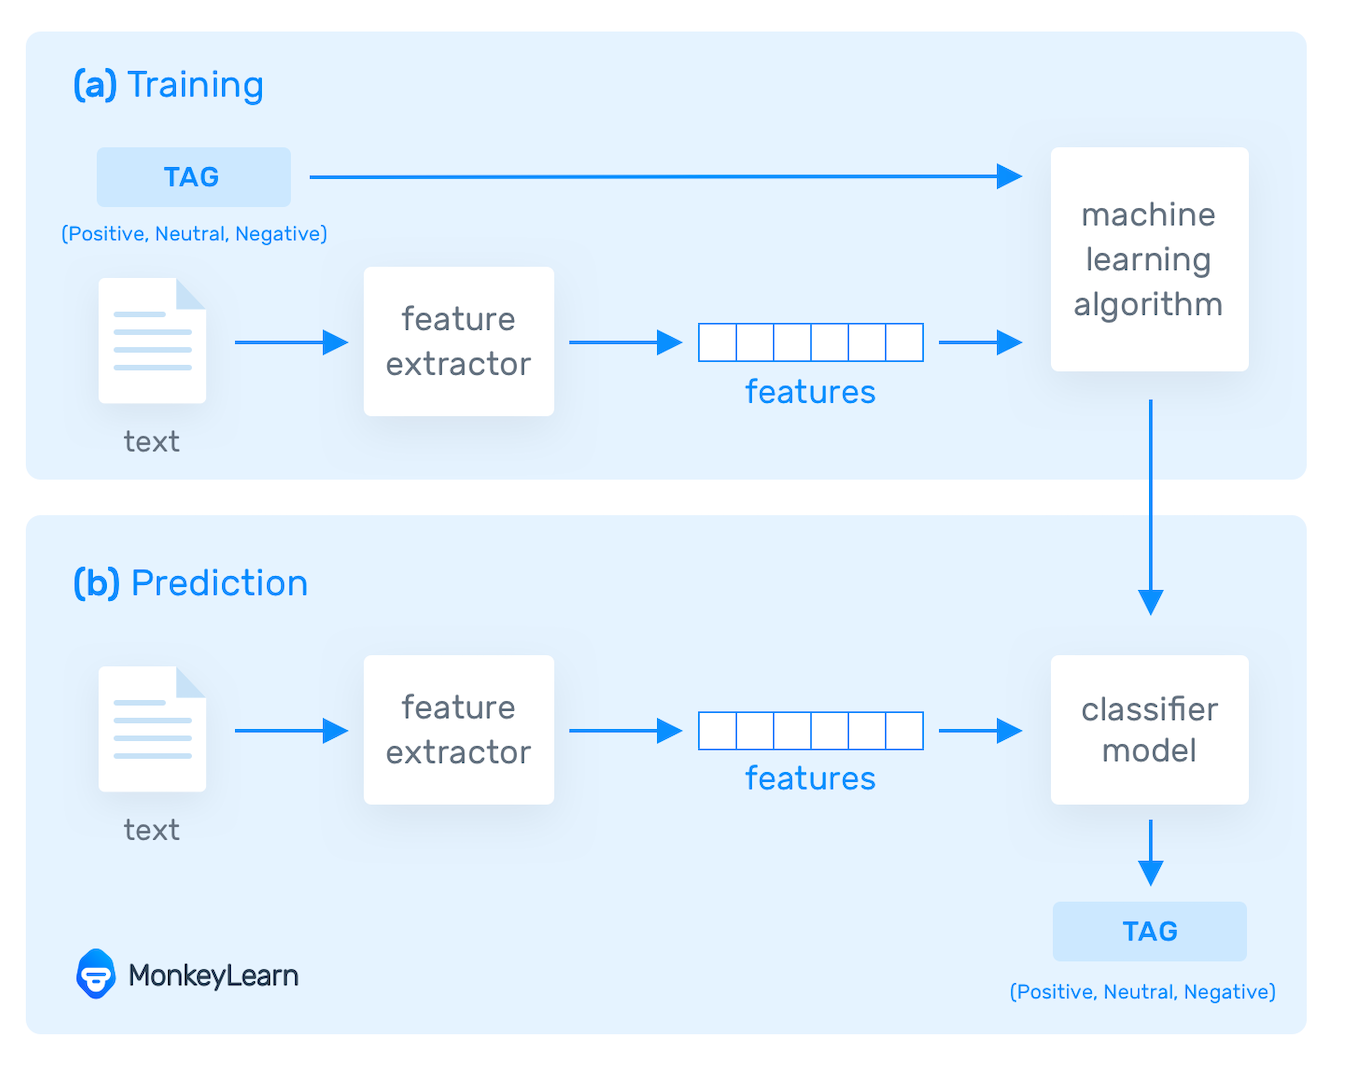 How NLP with machine learning works. Algorithms are fed training data and expected tags to help them make predictions on unseen data